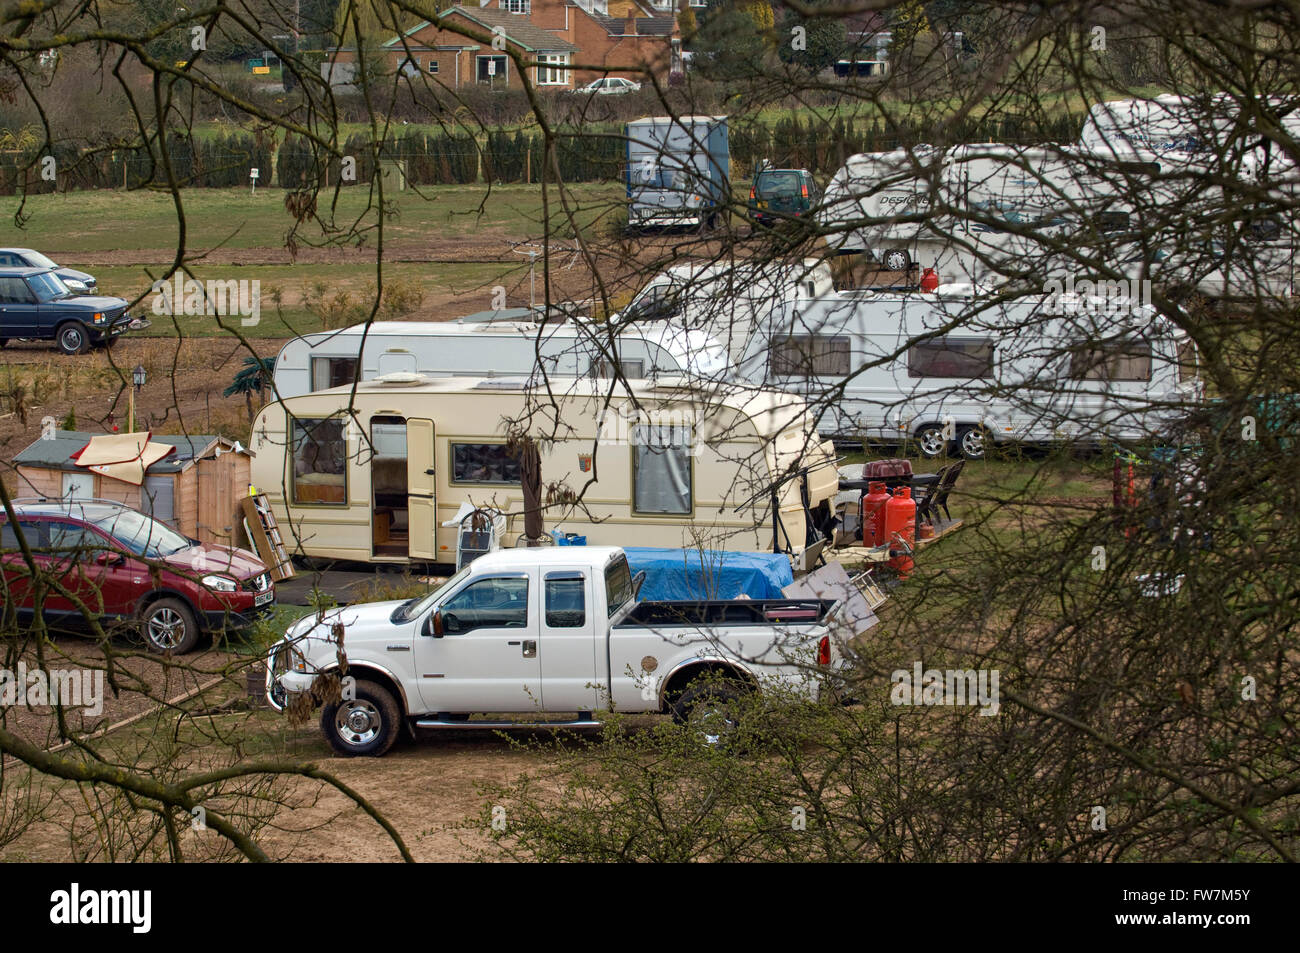 The village of Meriden,West Midlands,UK,said to be The Centre of England,where a large gypsy camp has caused problems. Stock Photo